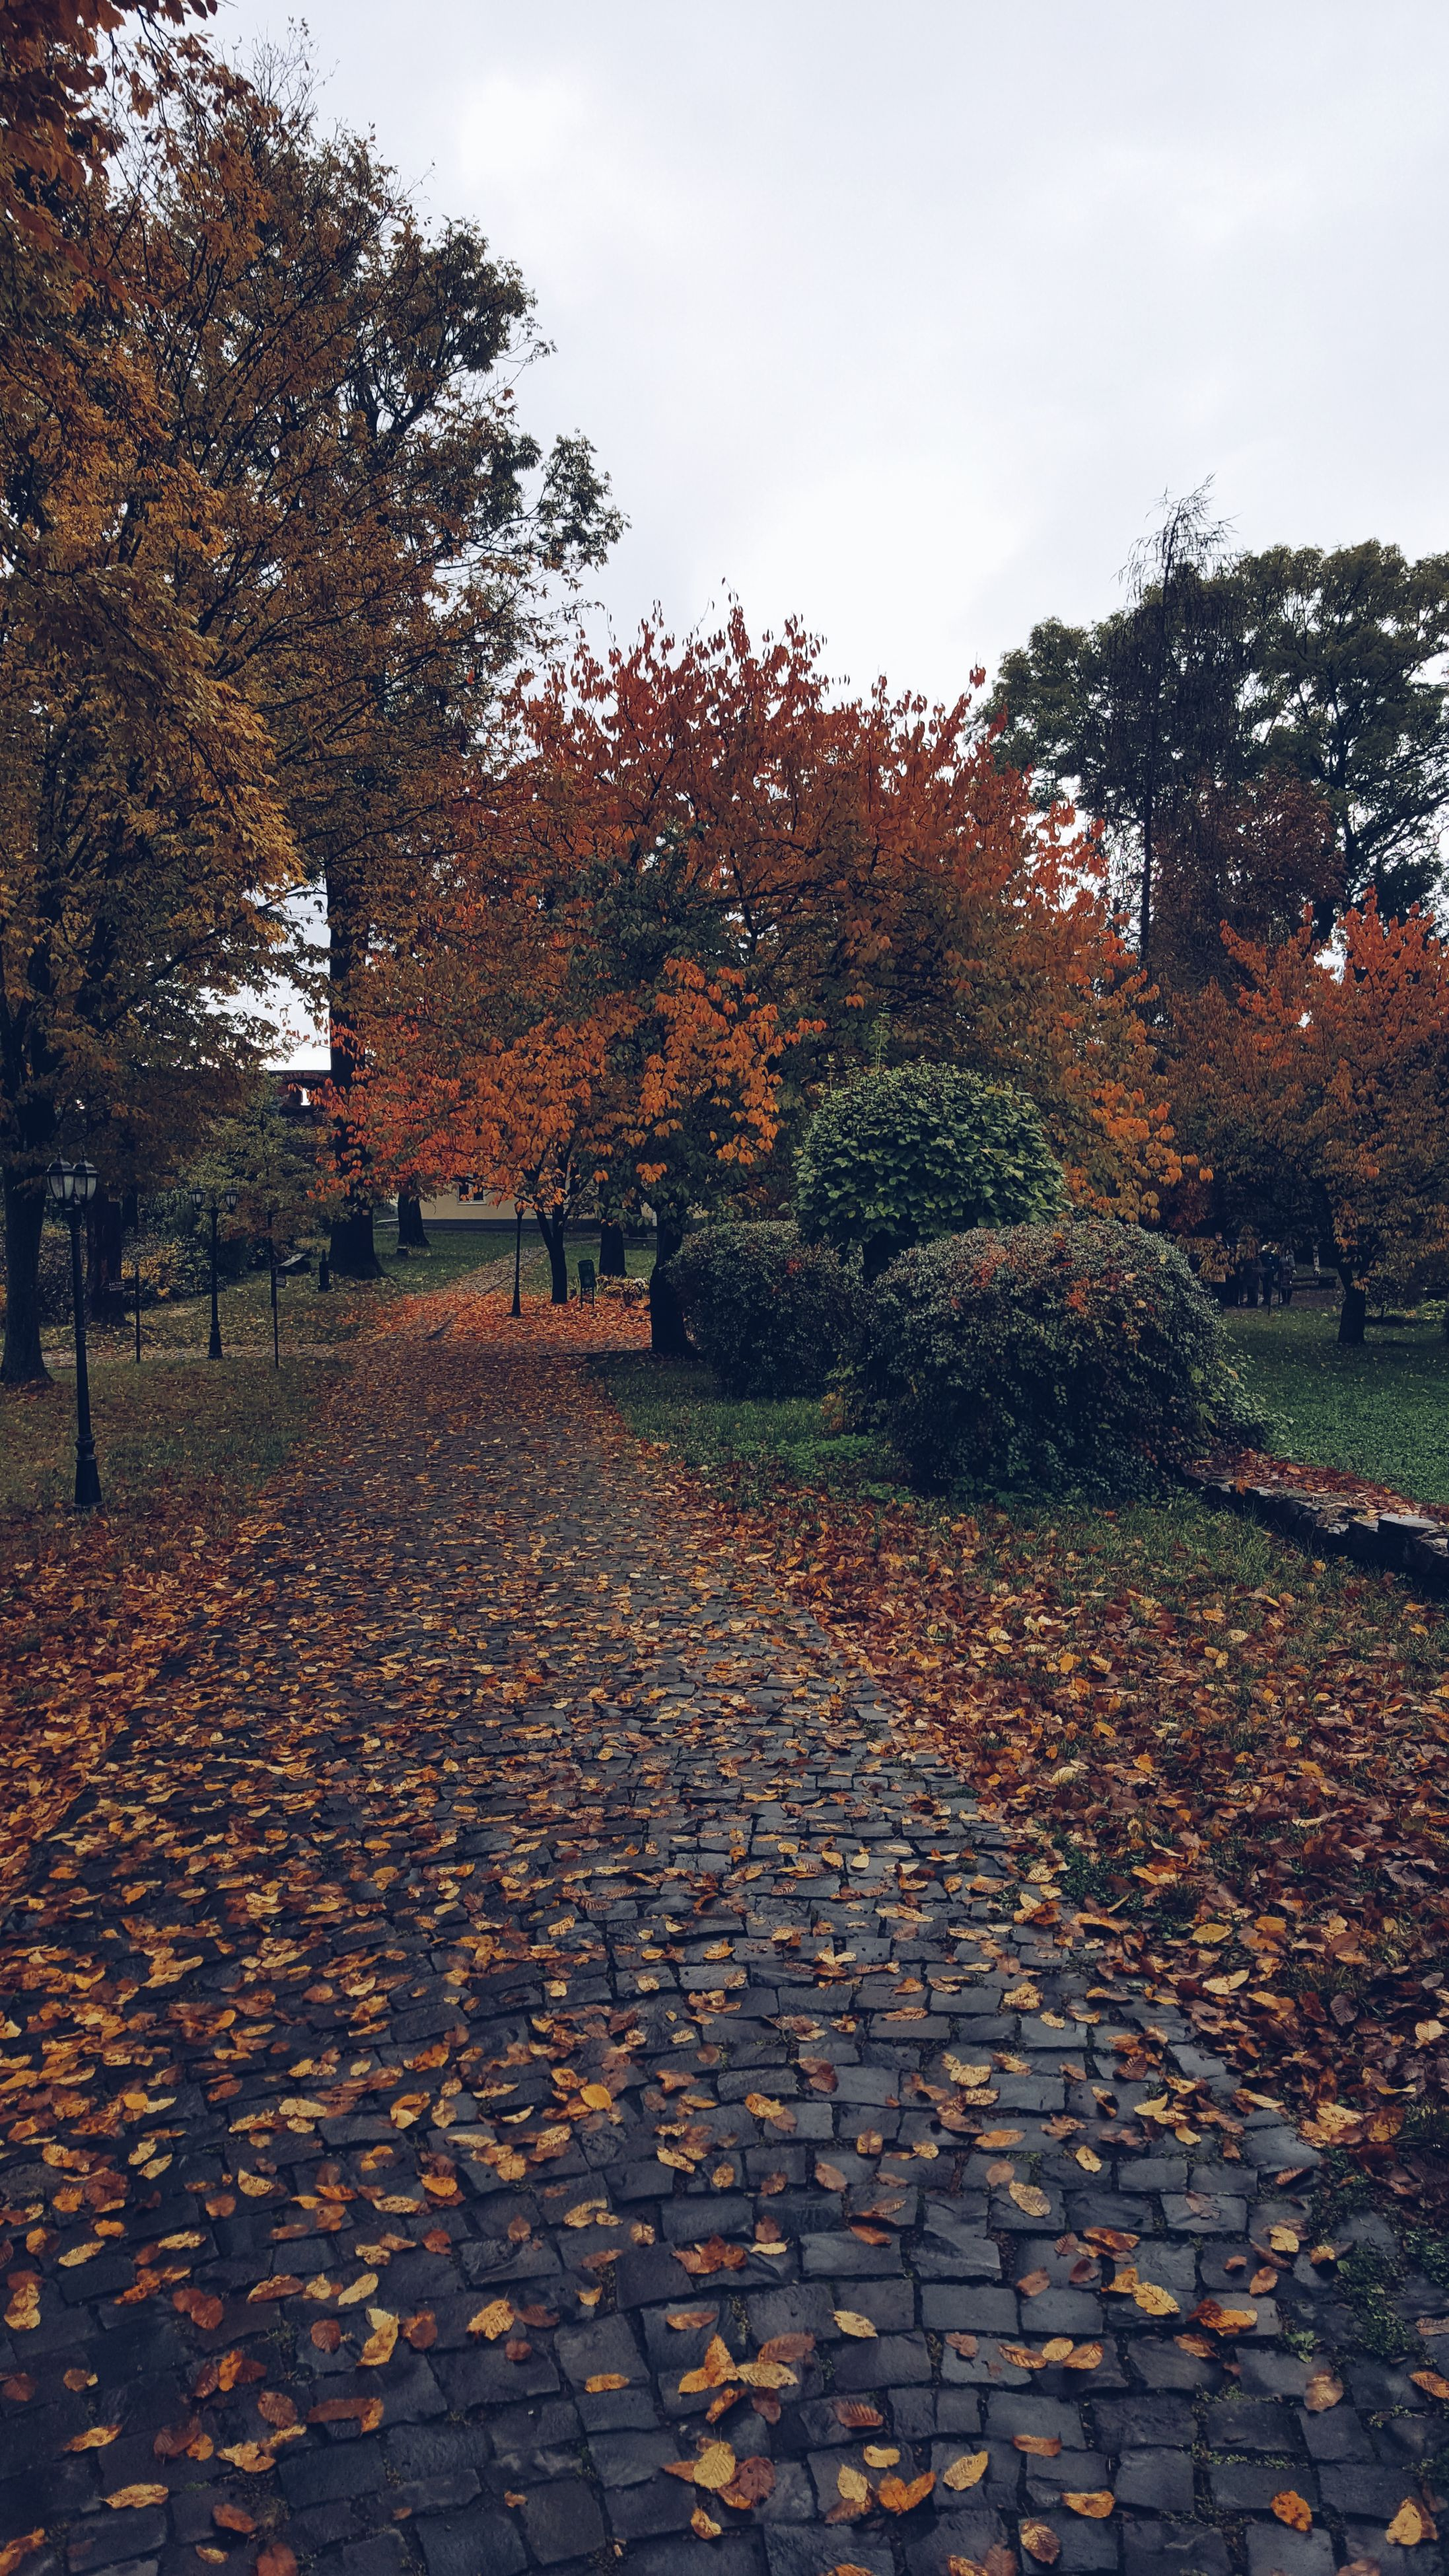 tree, sky, wet, outdoors, nature, day, water, leaf, autumn, large group of animals, no people